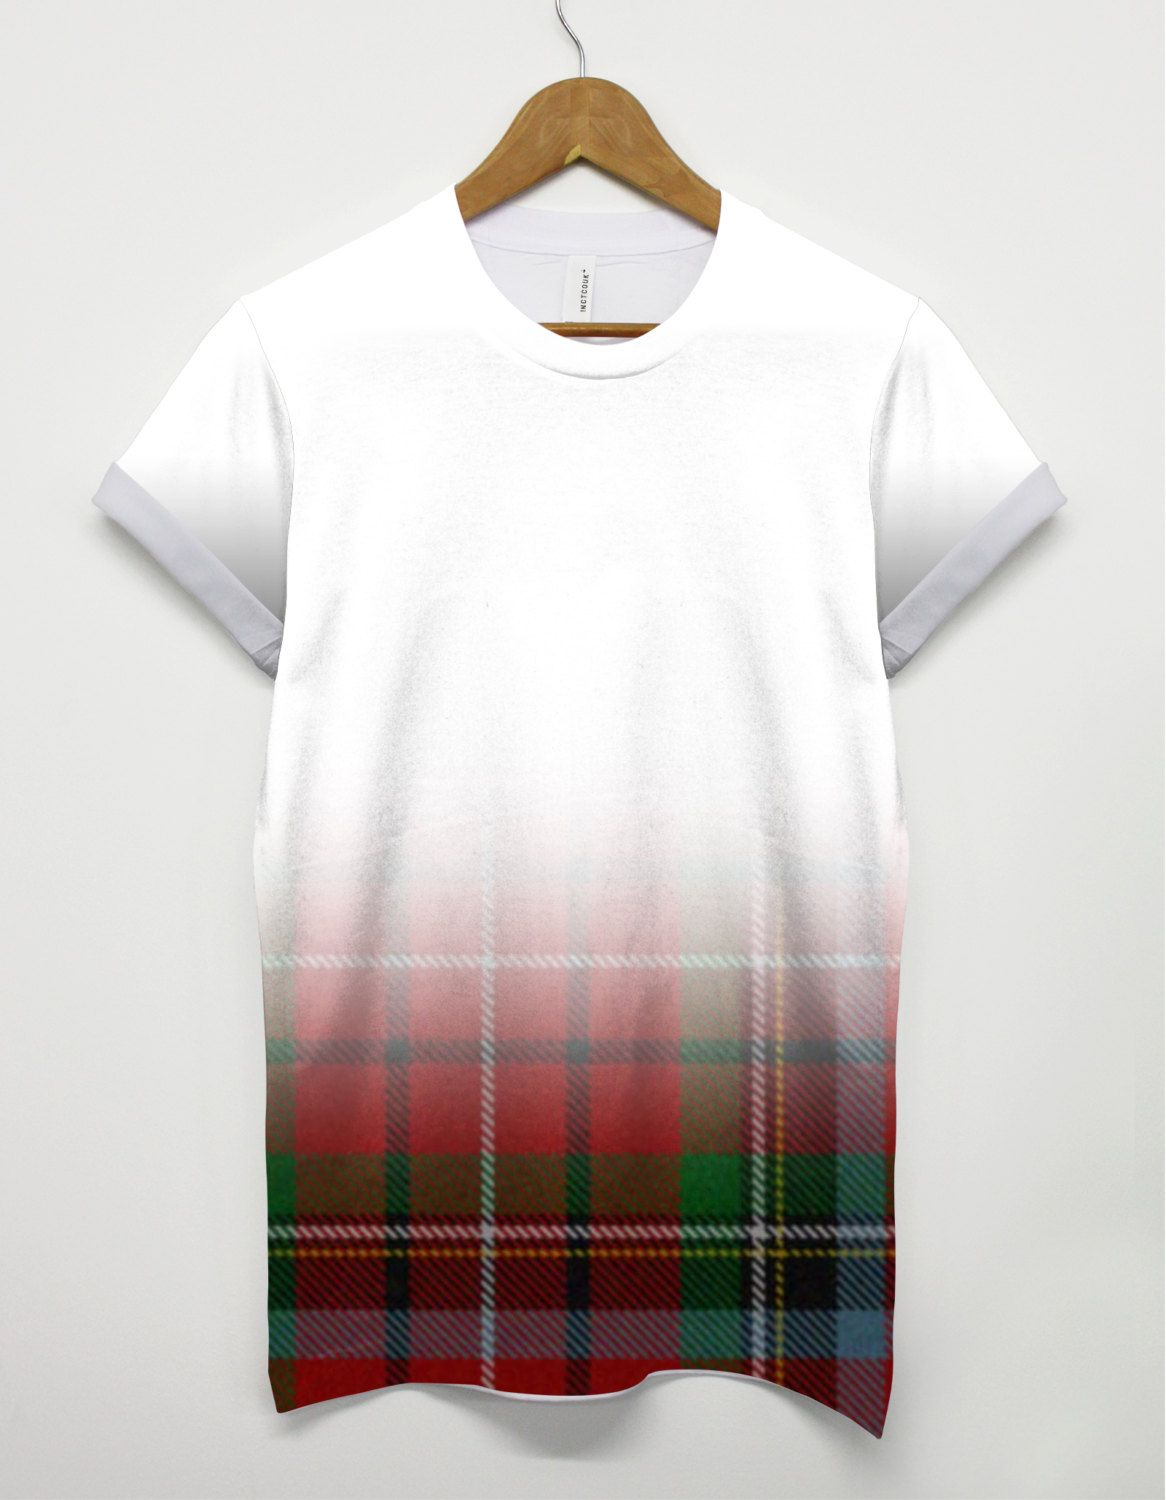 T shirt design quick delivery - Inct Tartan Faded All Over Fashion Printed Tshirt Hipster T Shirt Swag Brand New